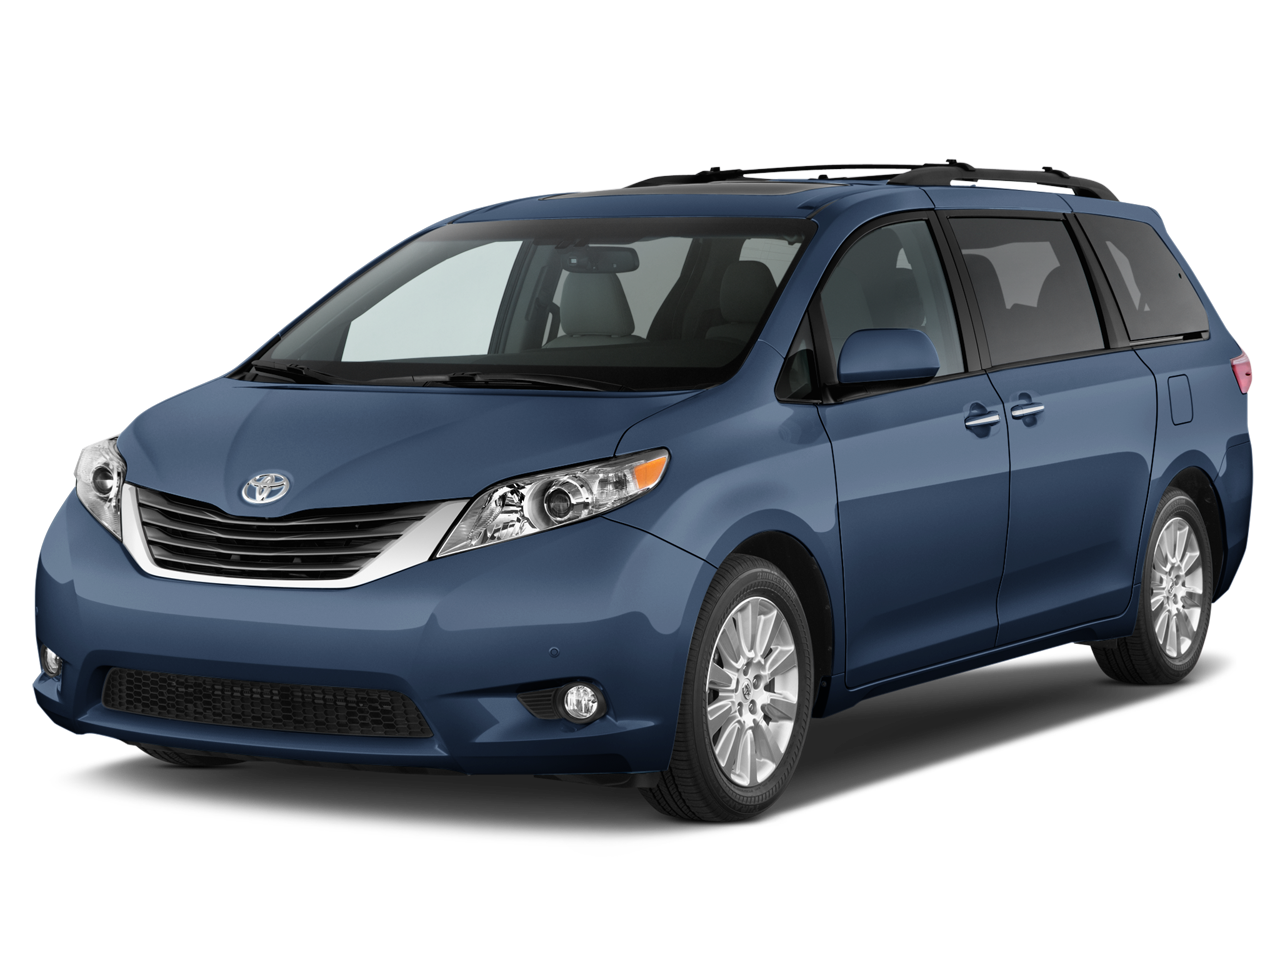 new 2017 toyota sienna xle premium 7 passenger near oak lawn il oak lawn toyota. Black Bedroom Furniture Sets. Home Design Ideas